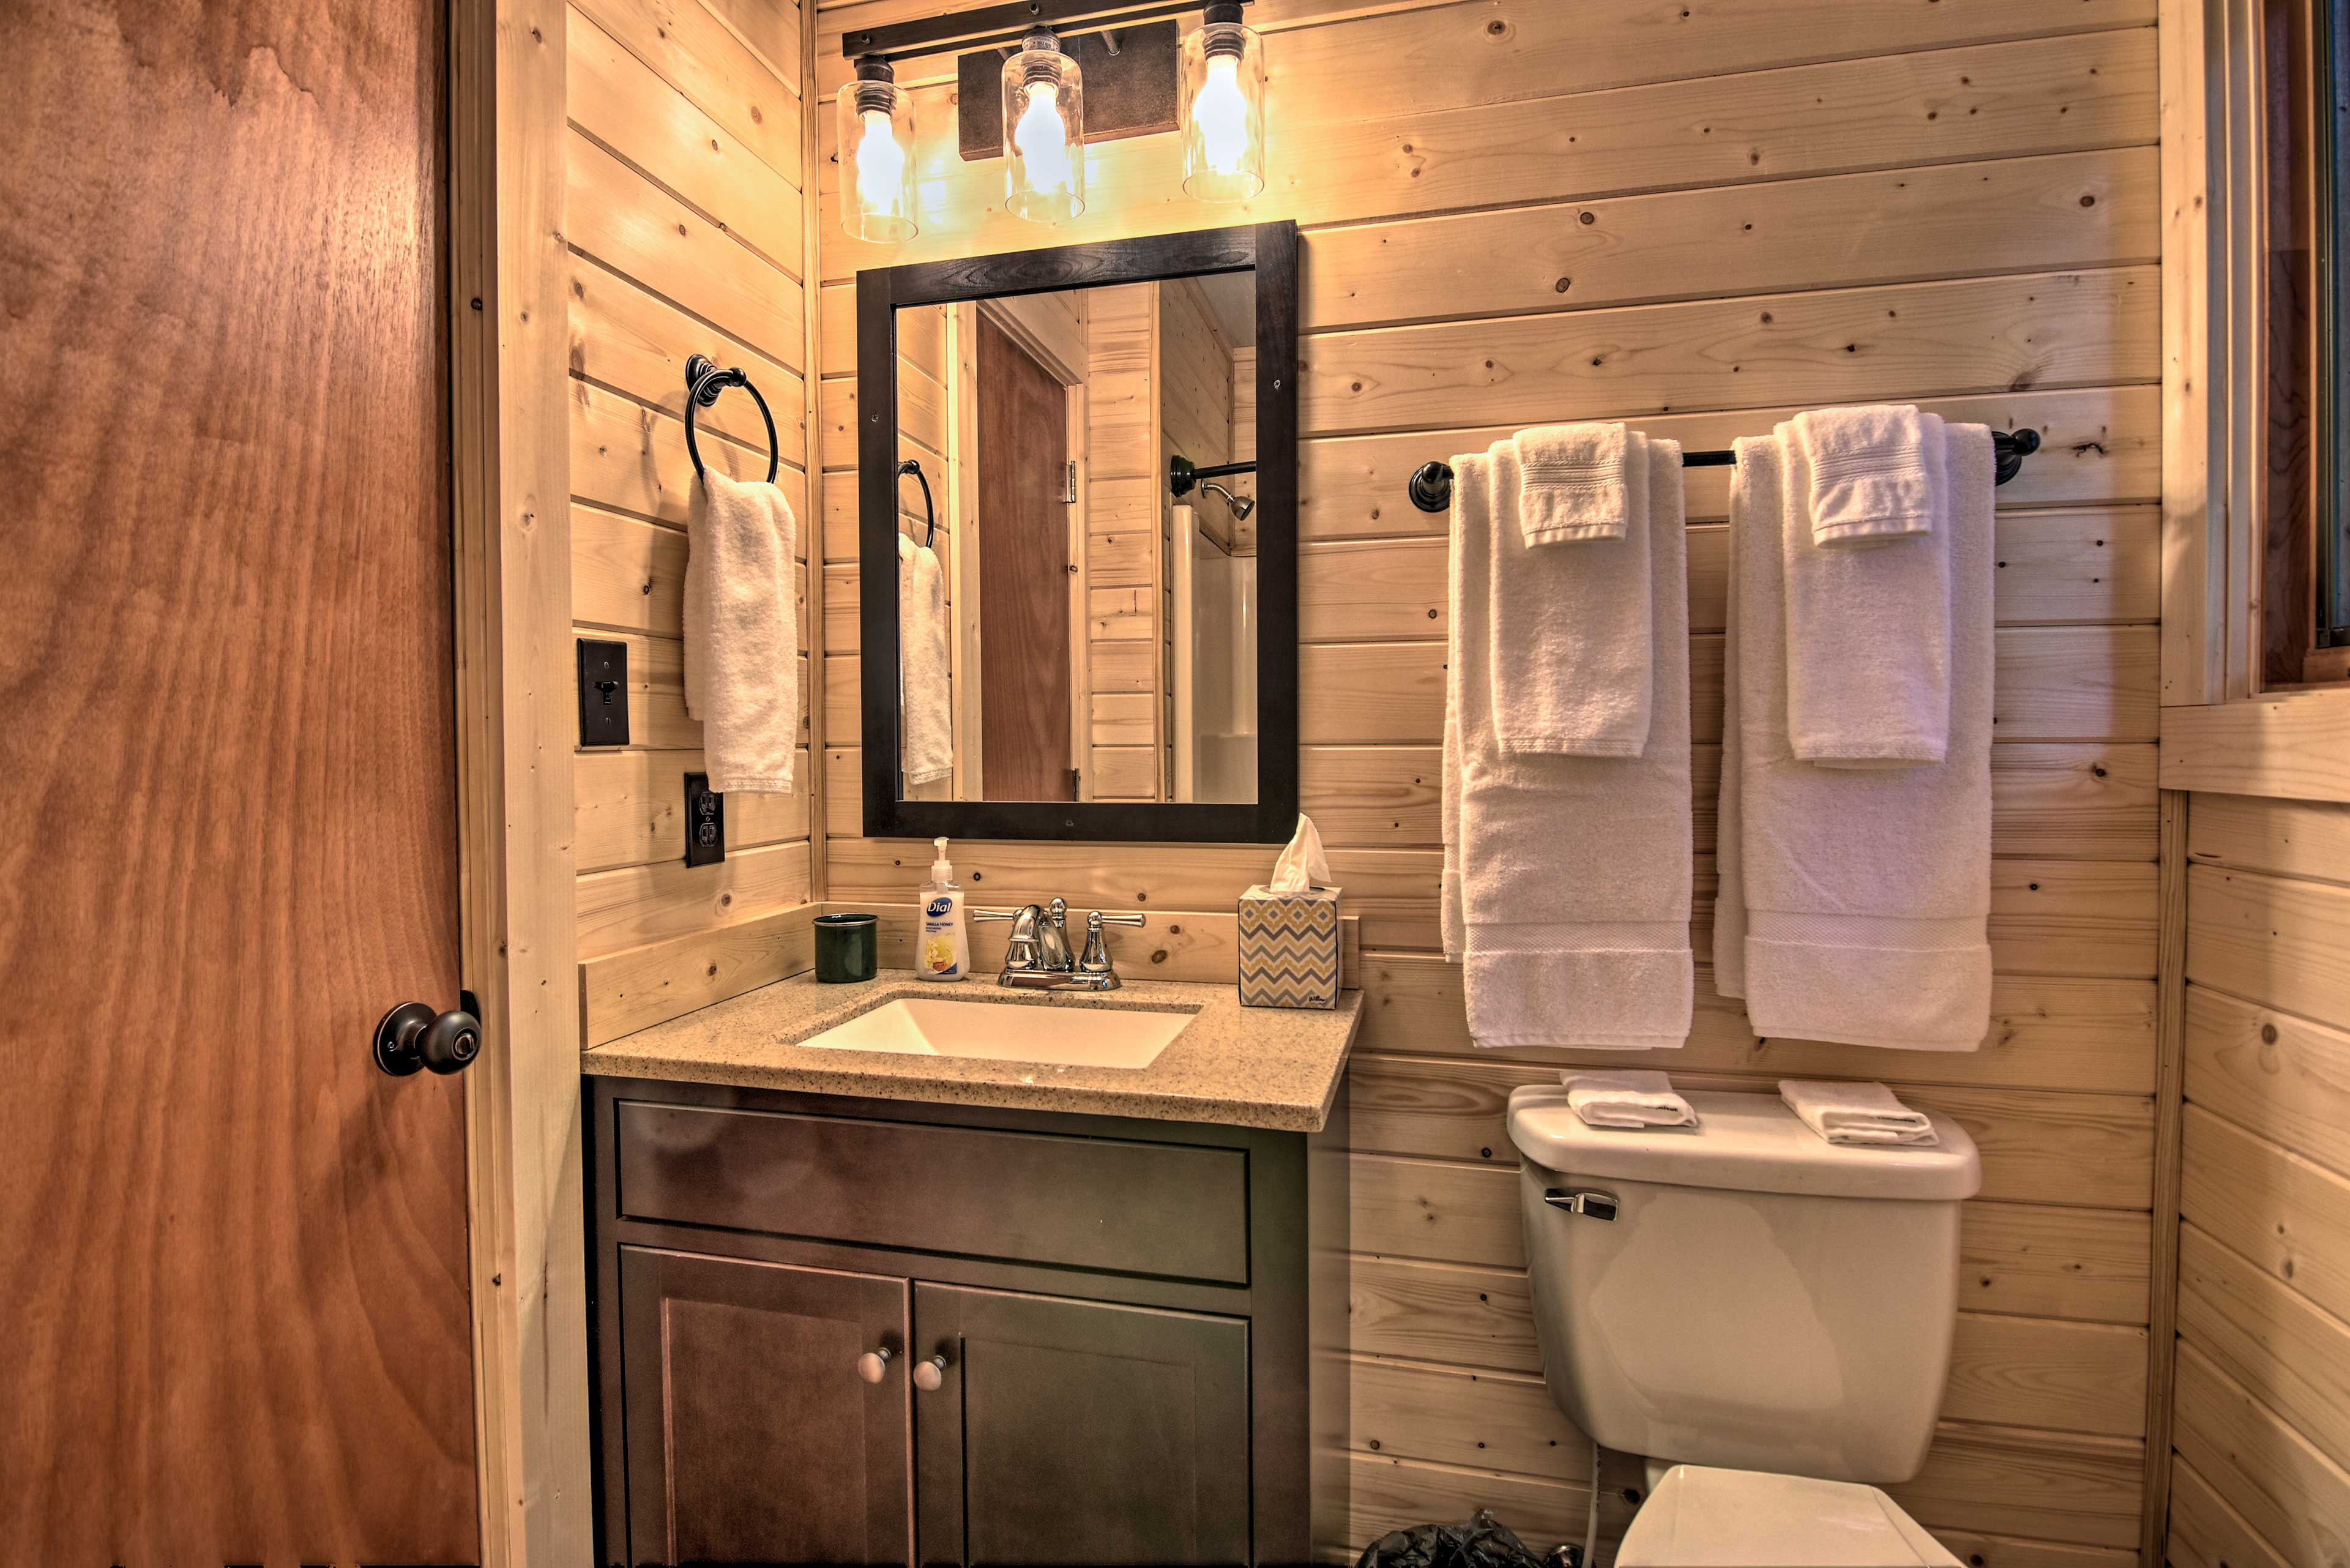 Two full bathrooms make getting ready stress-free!